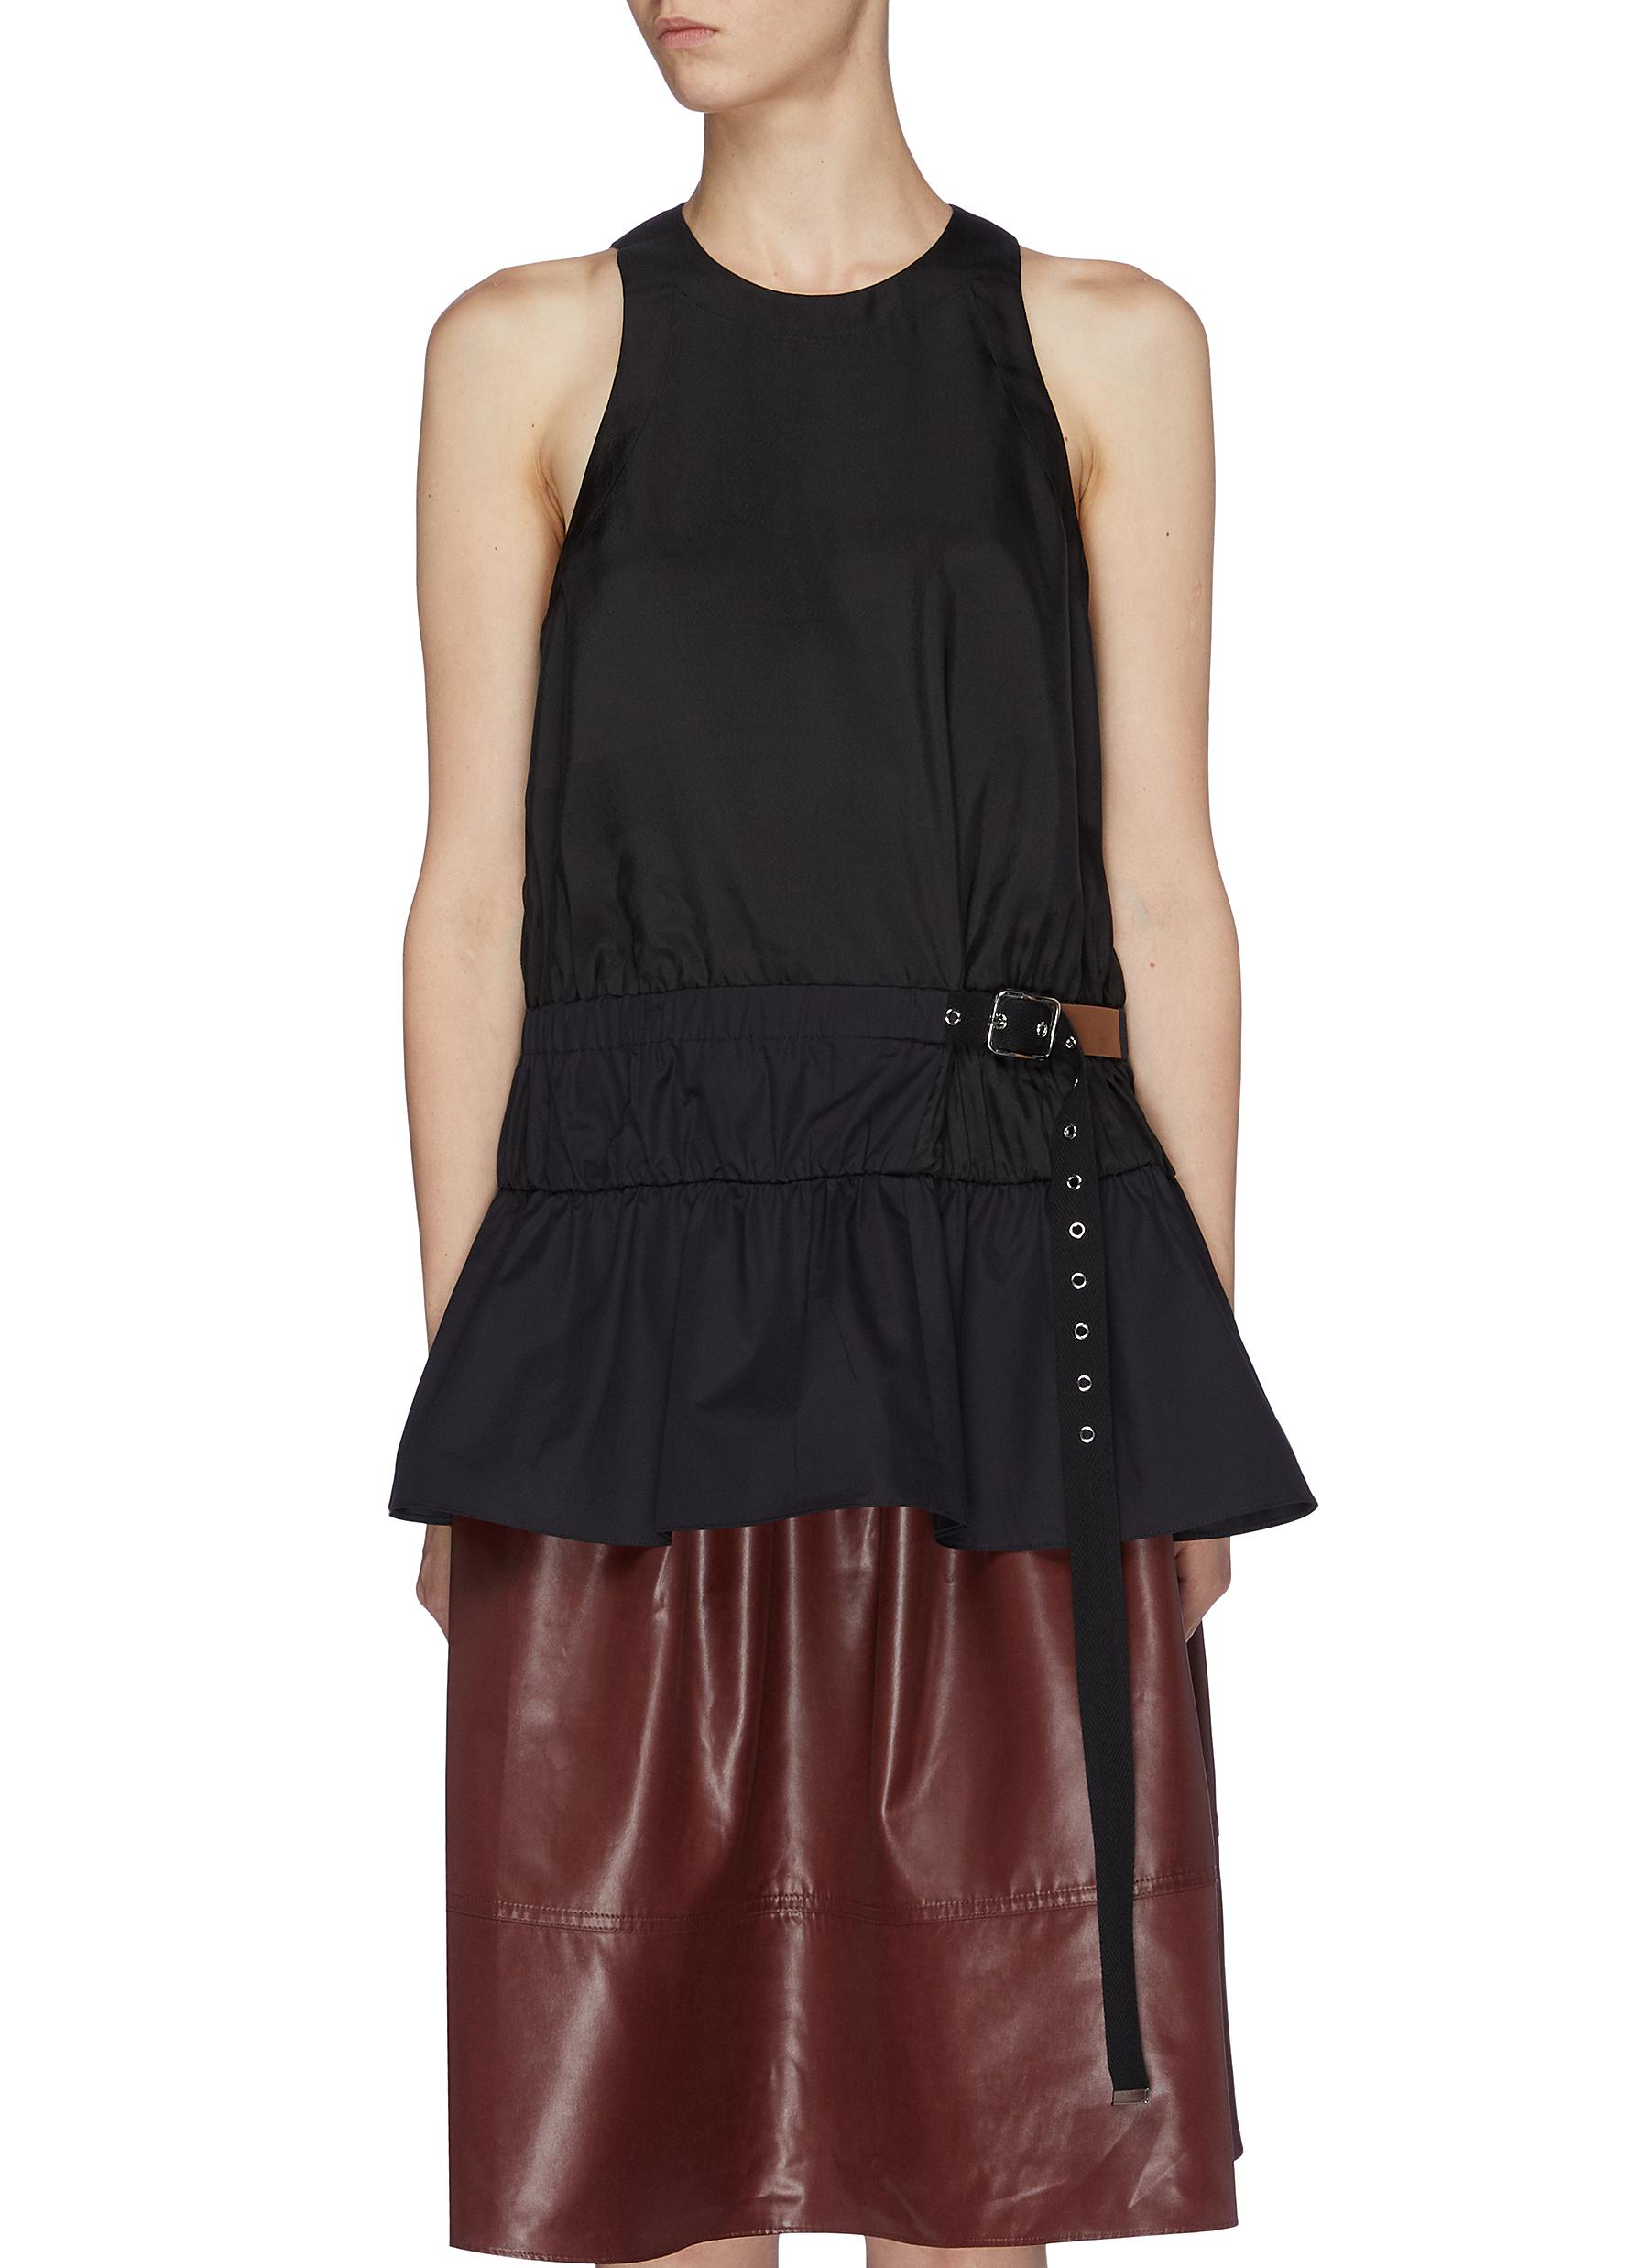 Mendini belted twill peplum top by Tibi